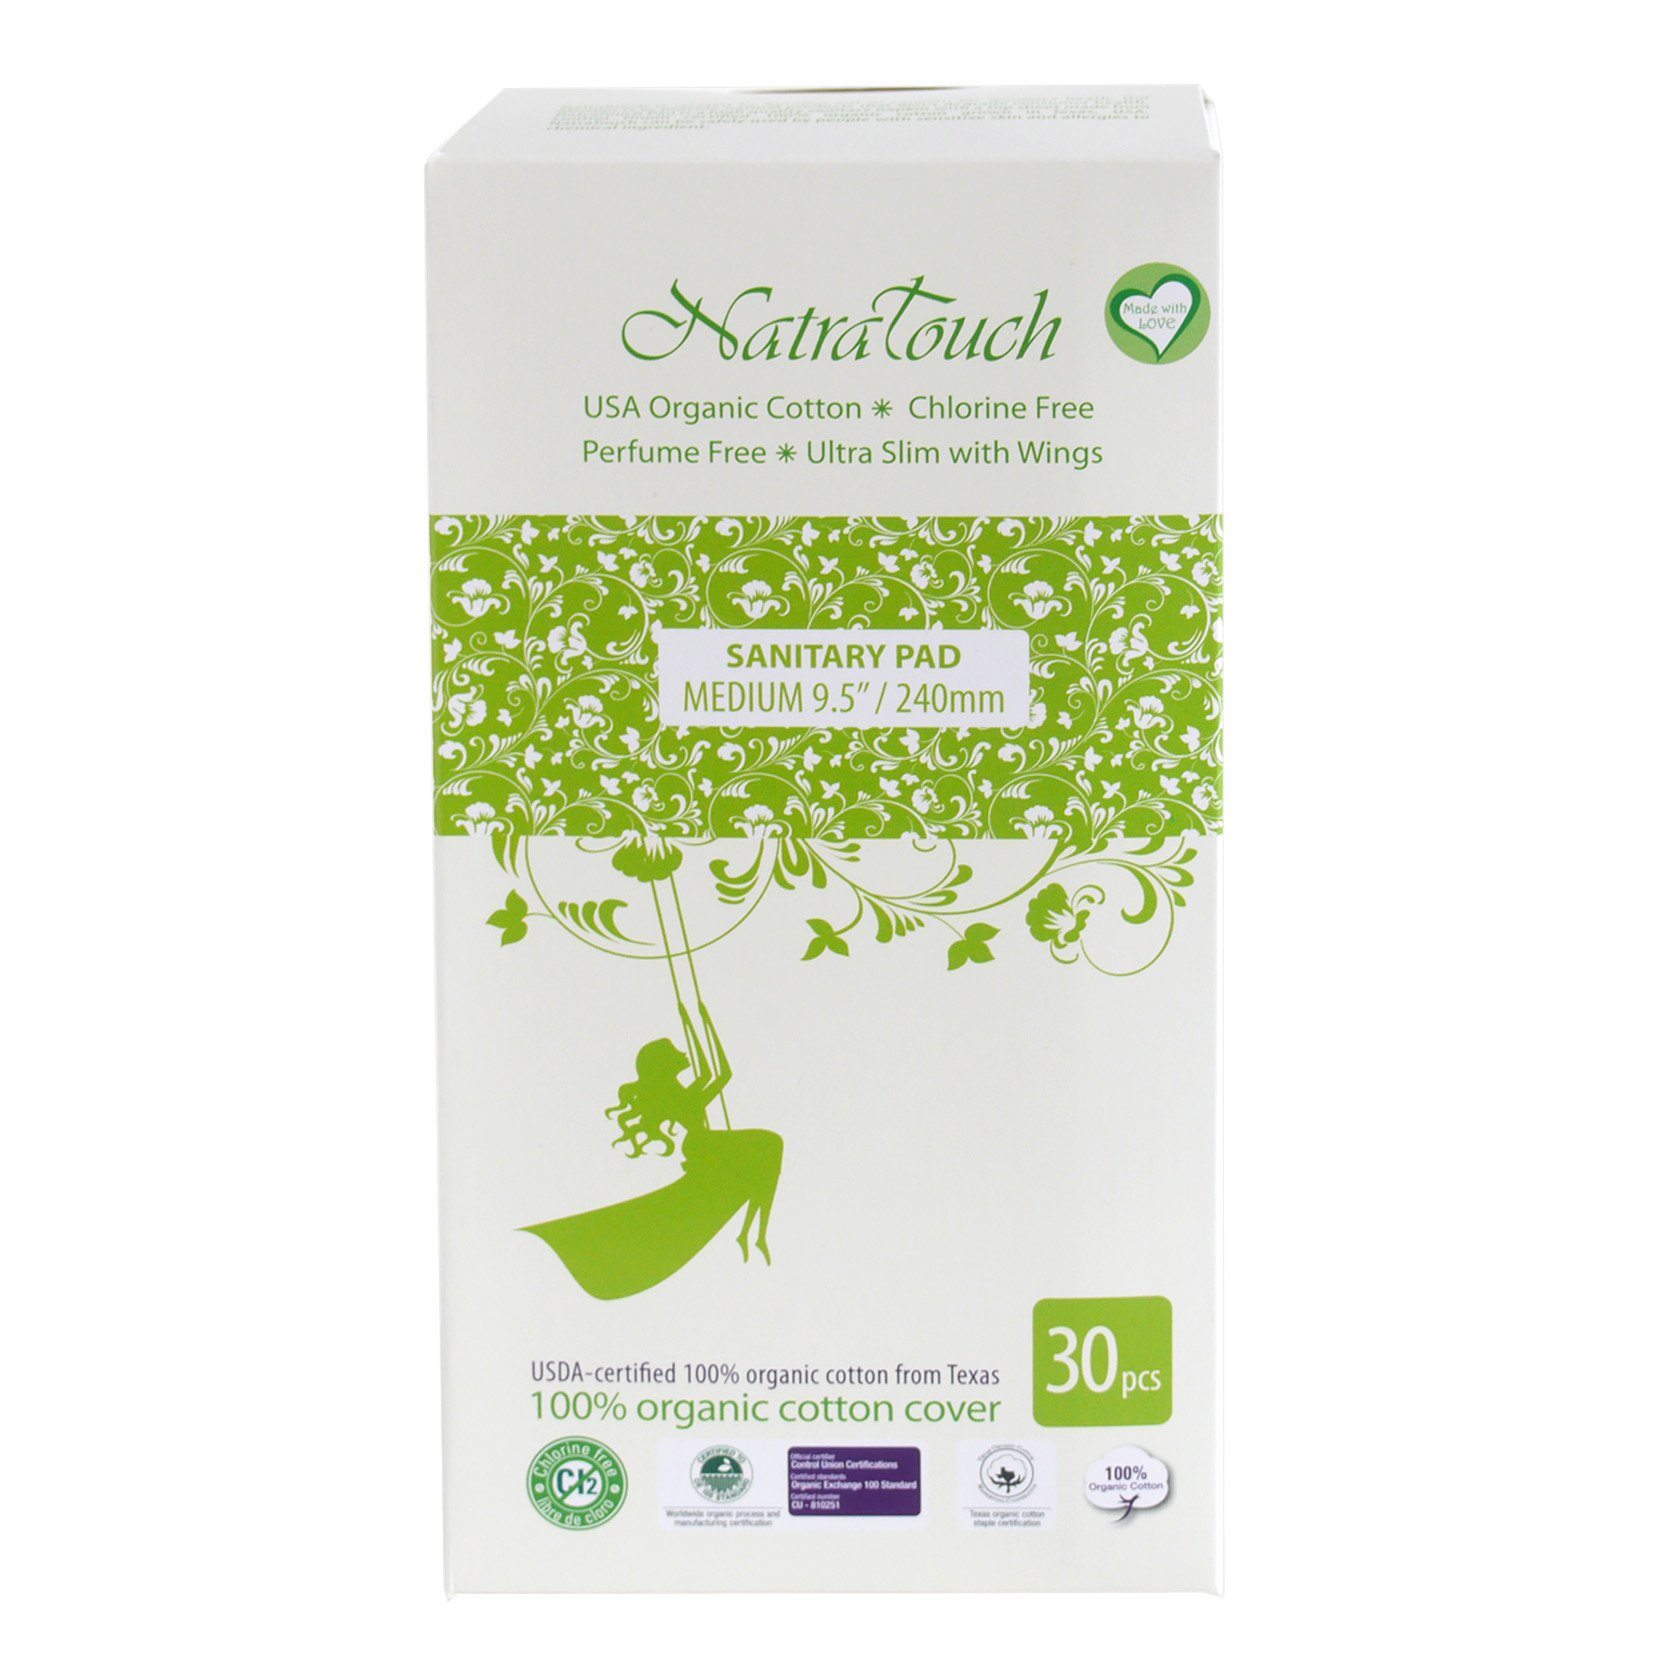 Natratouch Organic Cotton Sanitary Pads Ultra Slim with Wings 30 piece (Medium)